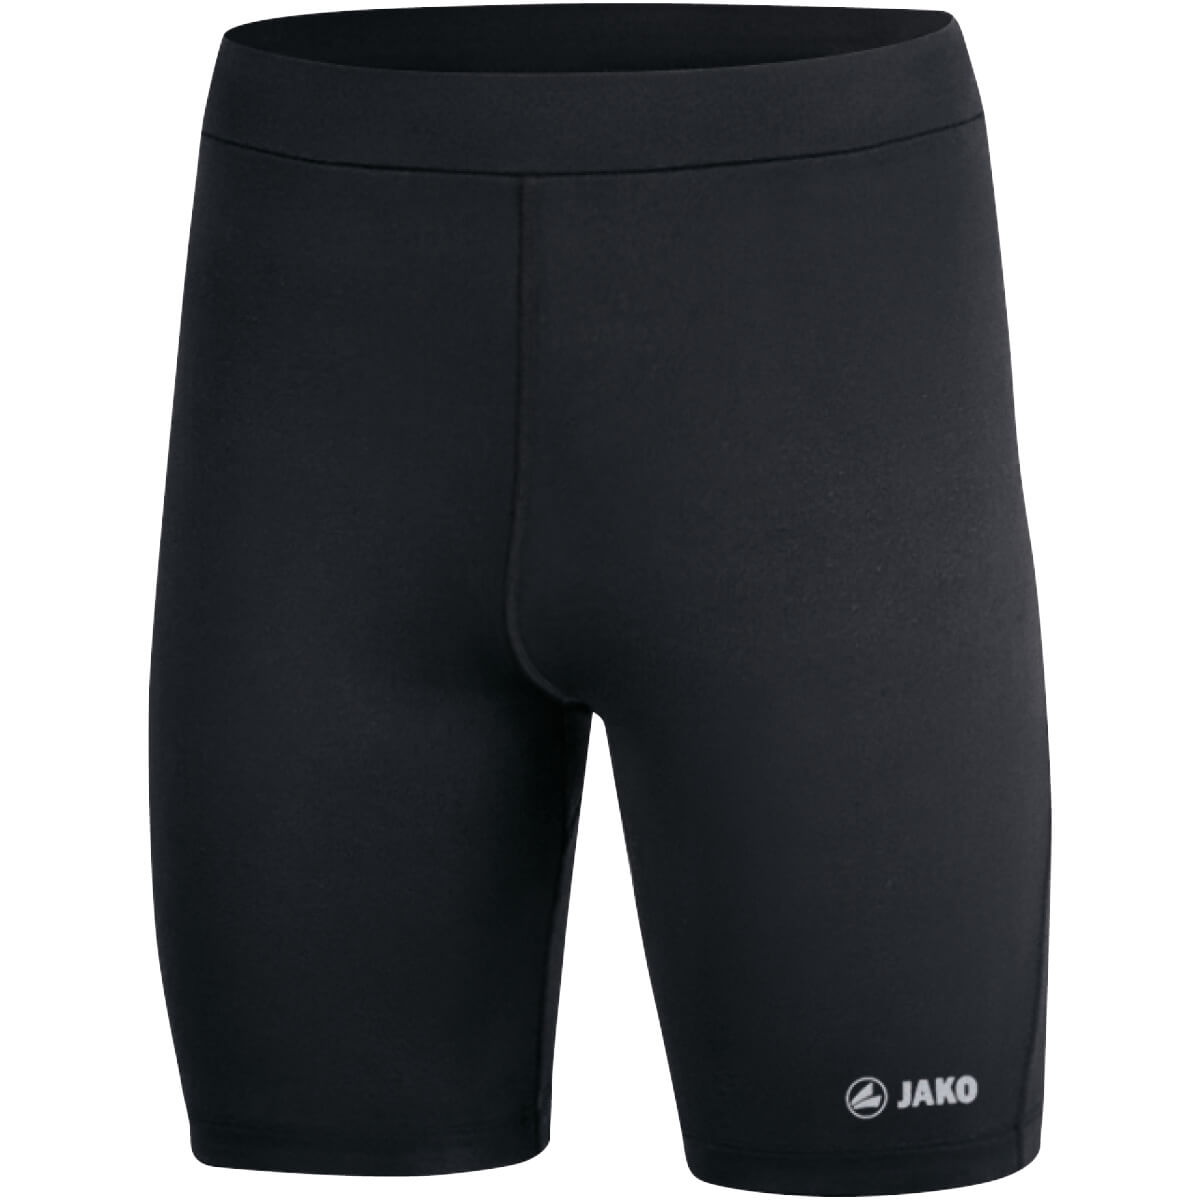 Jako Short Tight Run 2.0 Herren 8526  | div. Größen / Farben